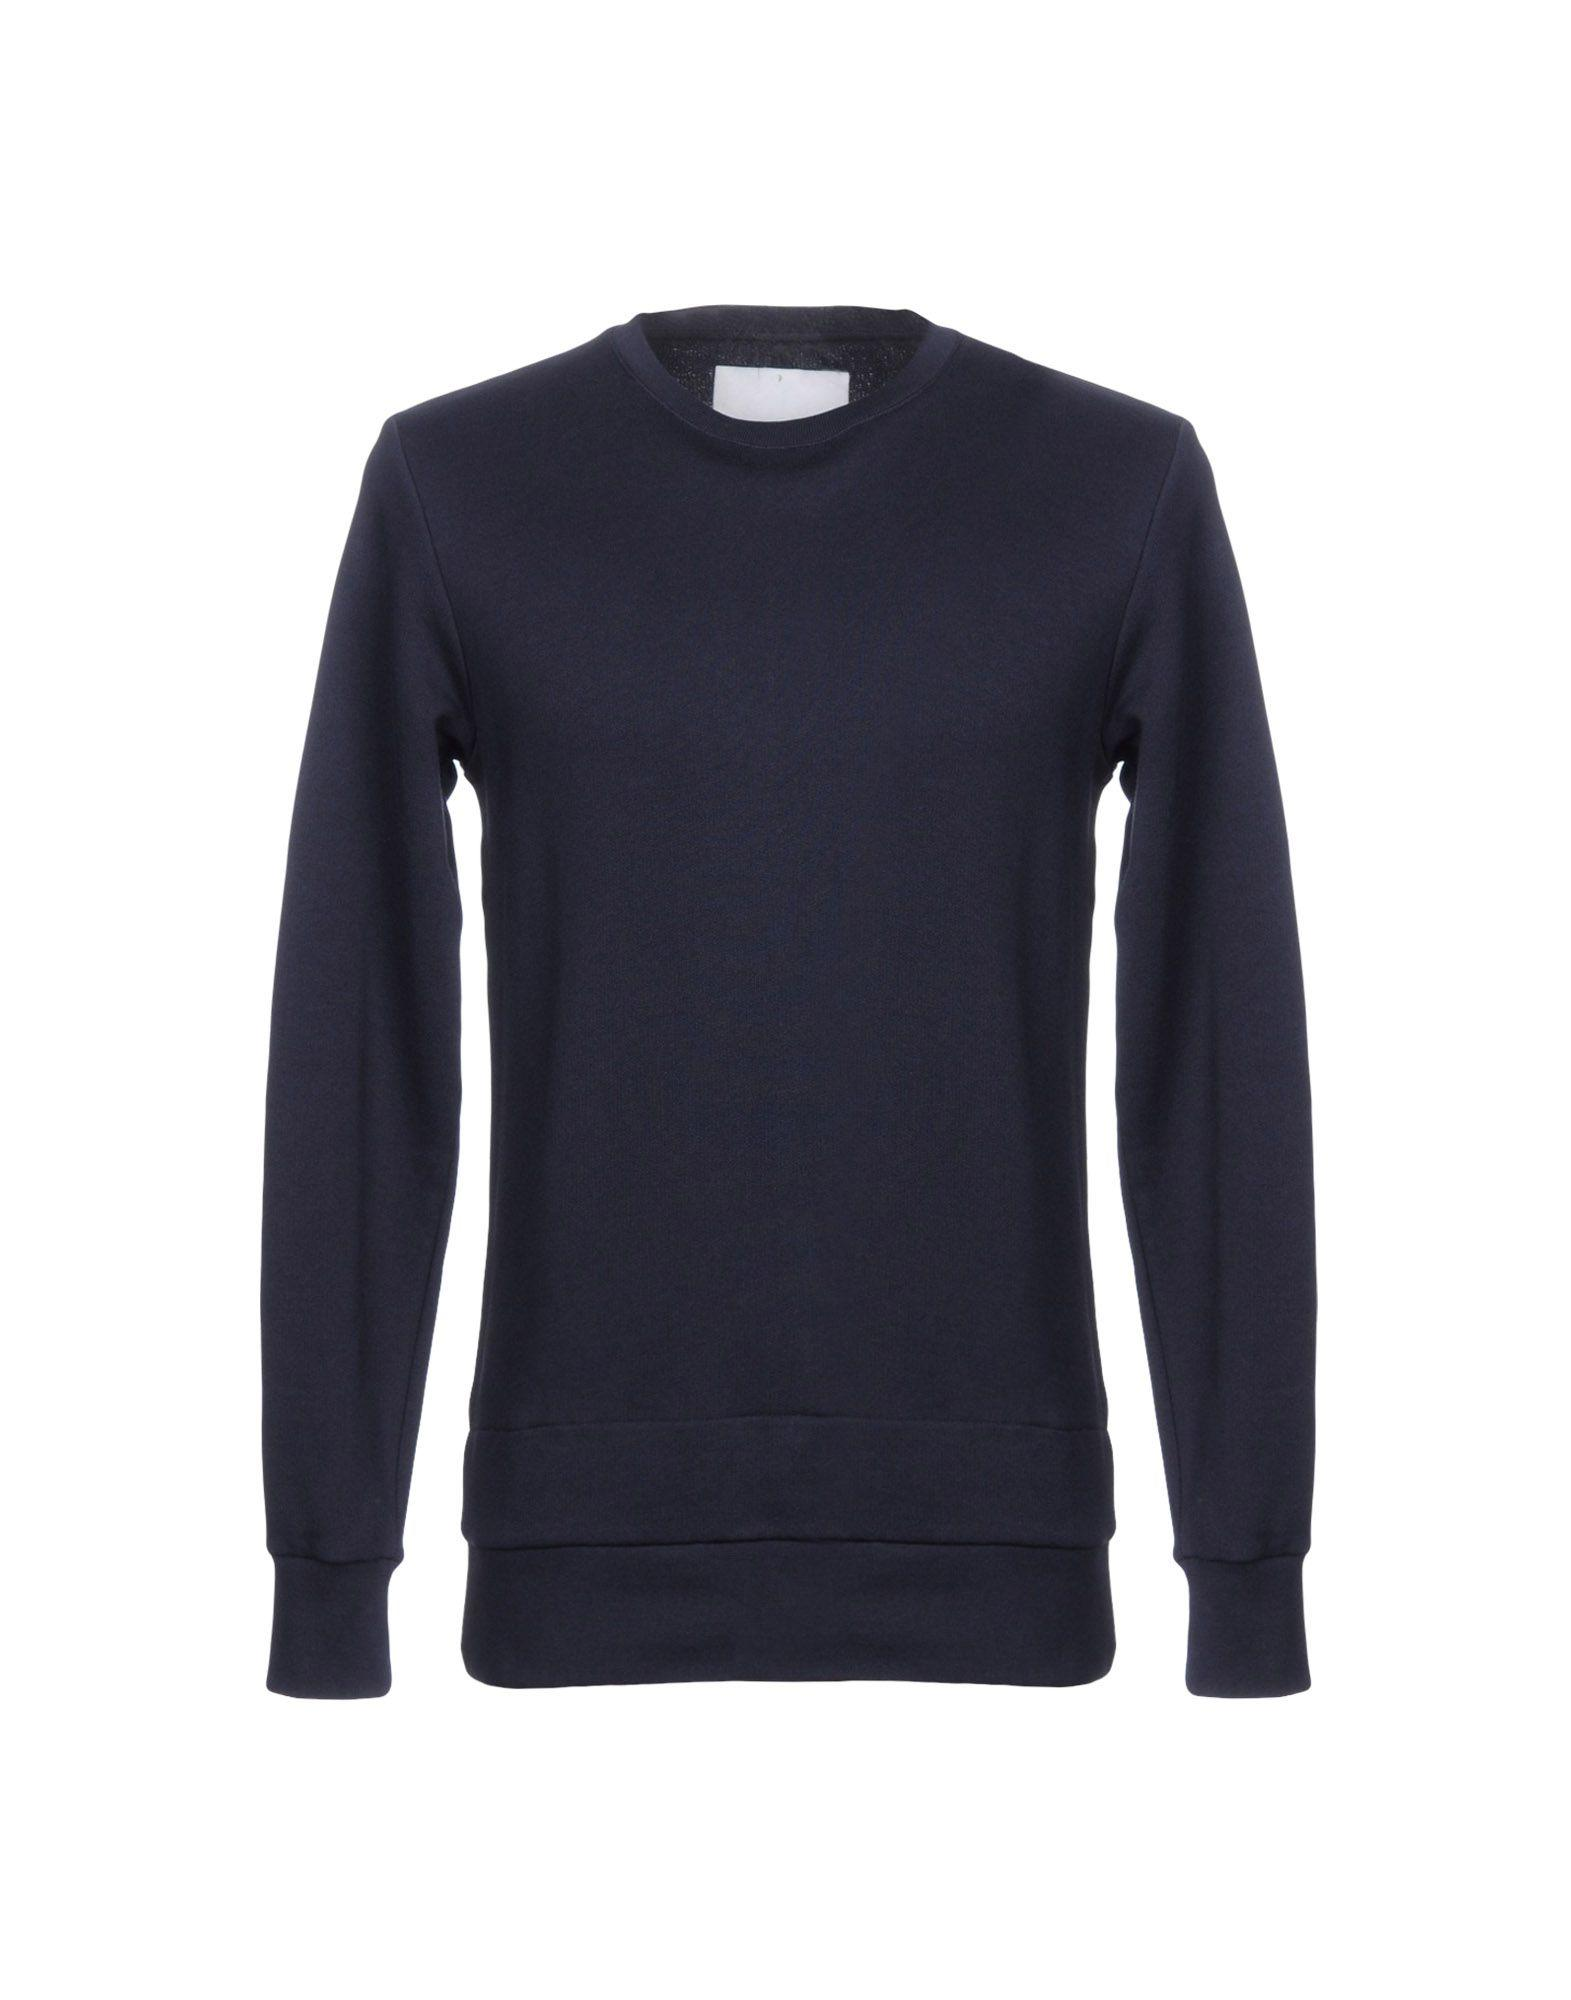 Matthew Miller Sweatshirt In Dark Blue